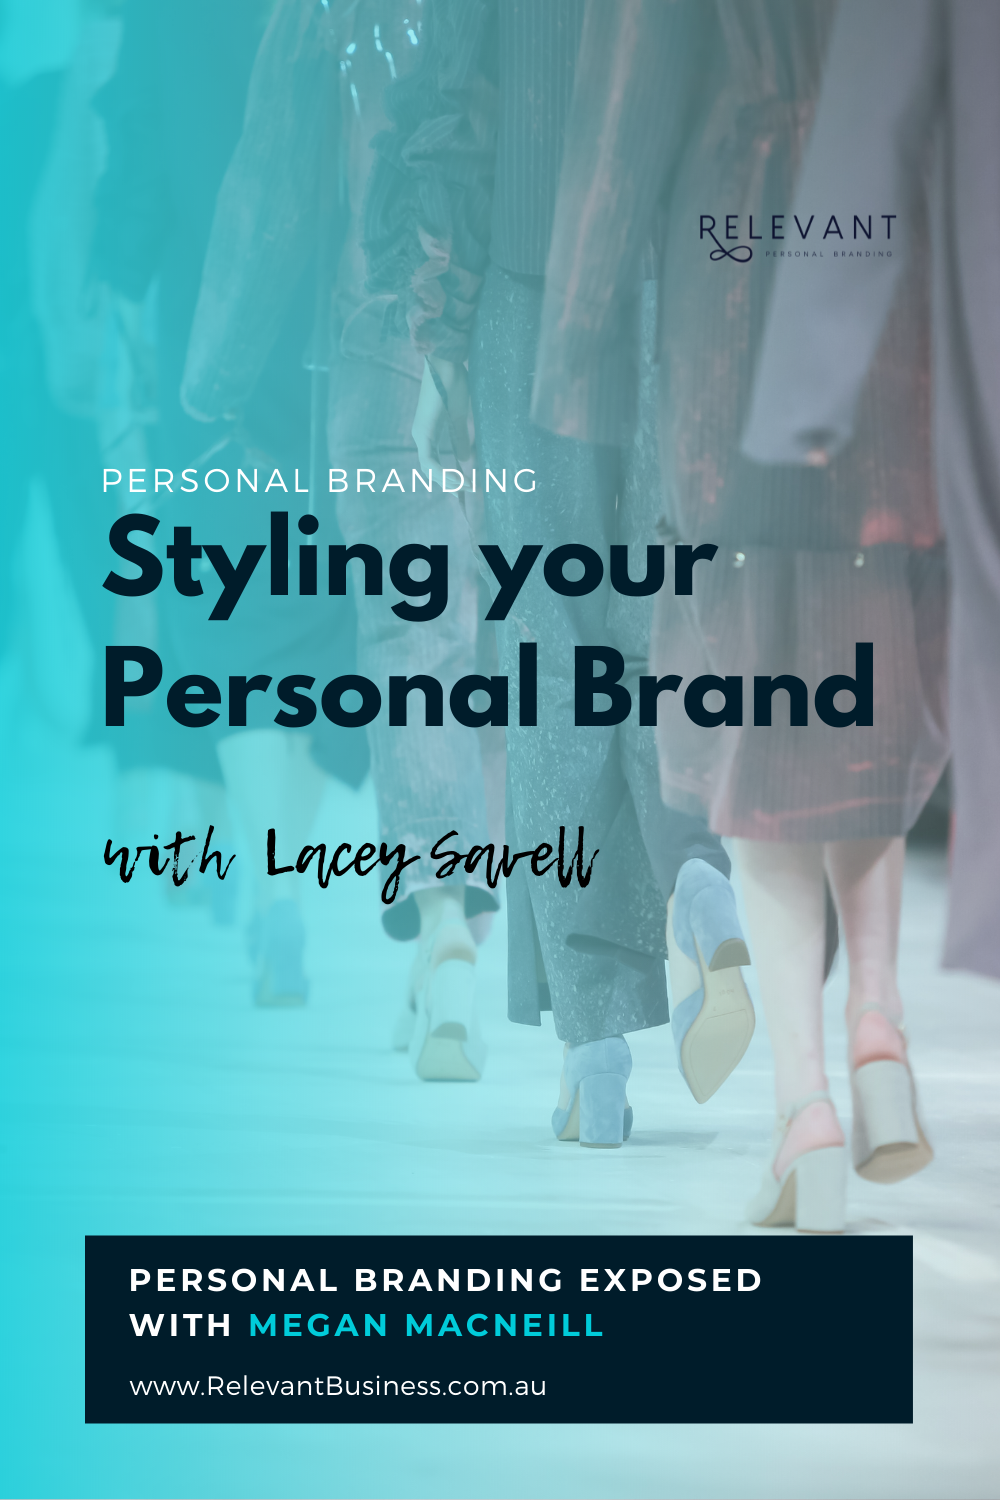 Styling your Personal Brand with Lacey Savell